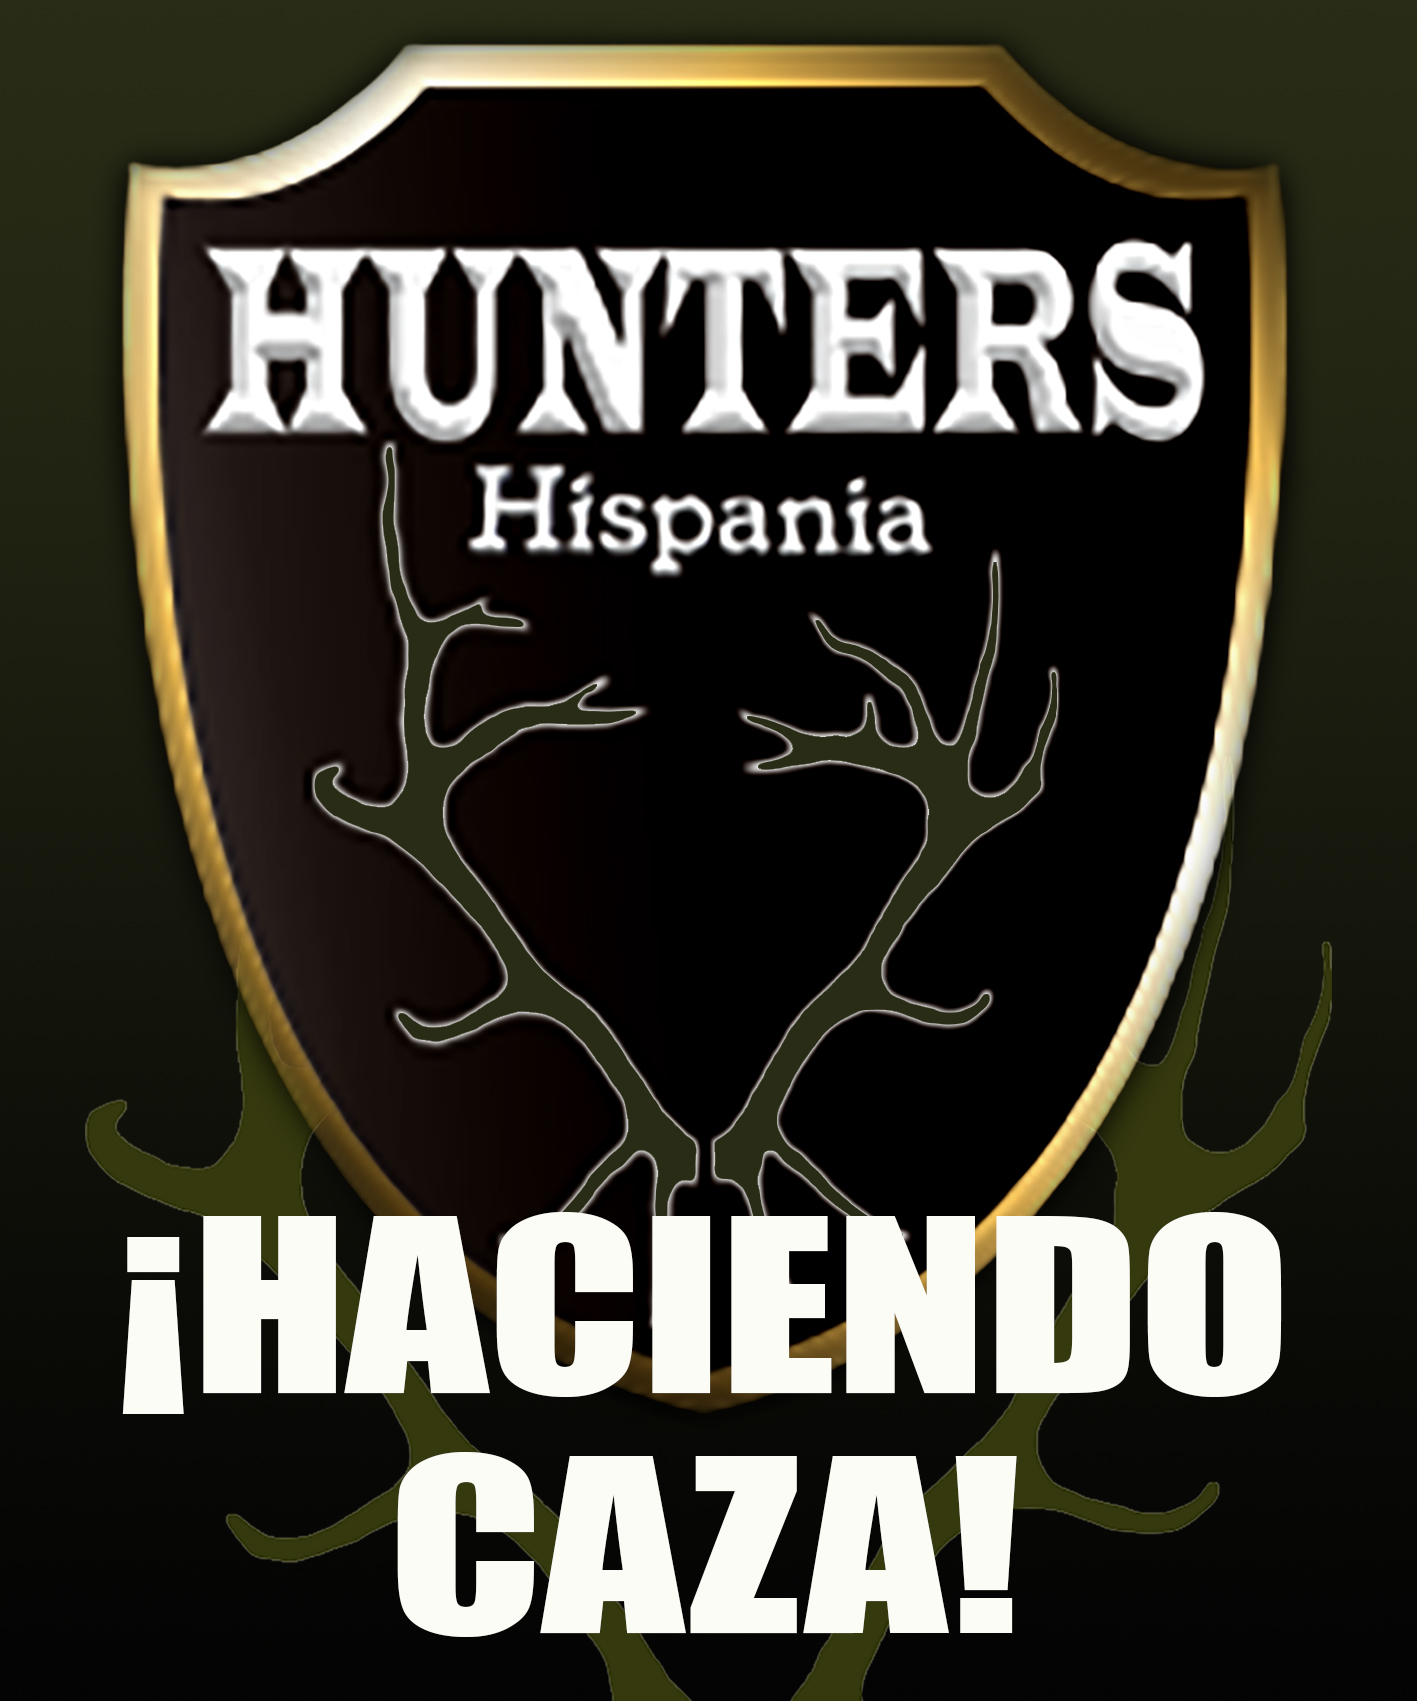 Hunters hispania pop up